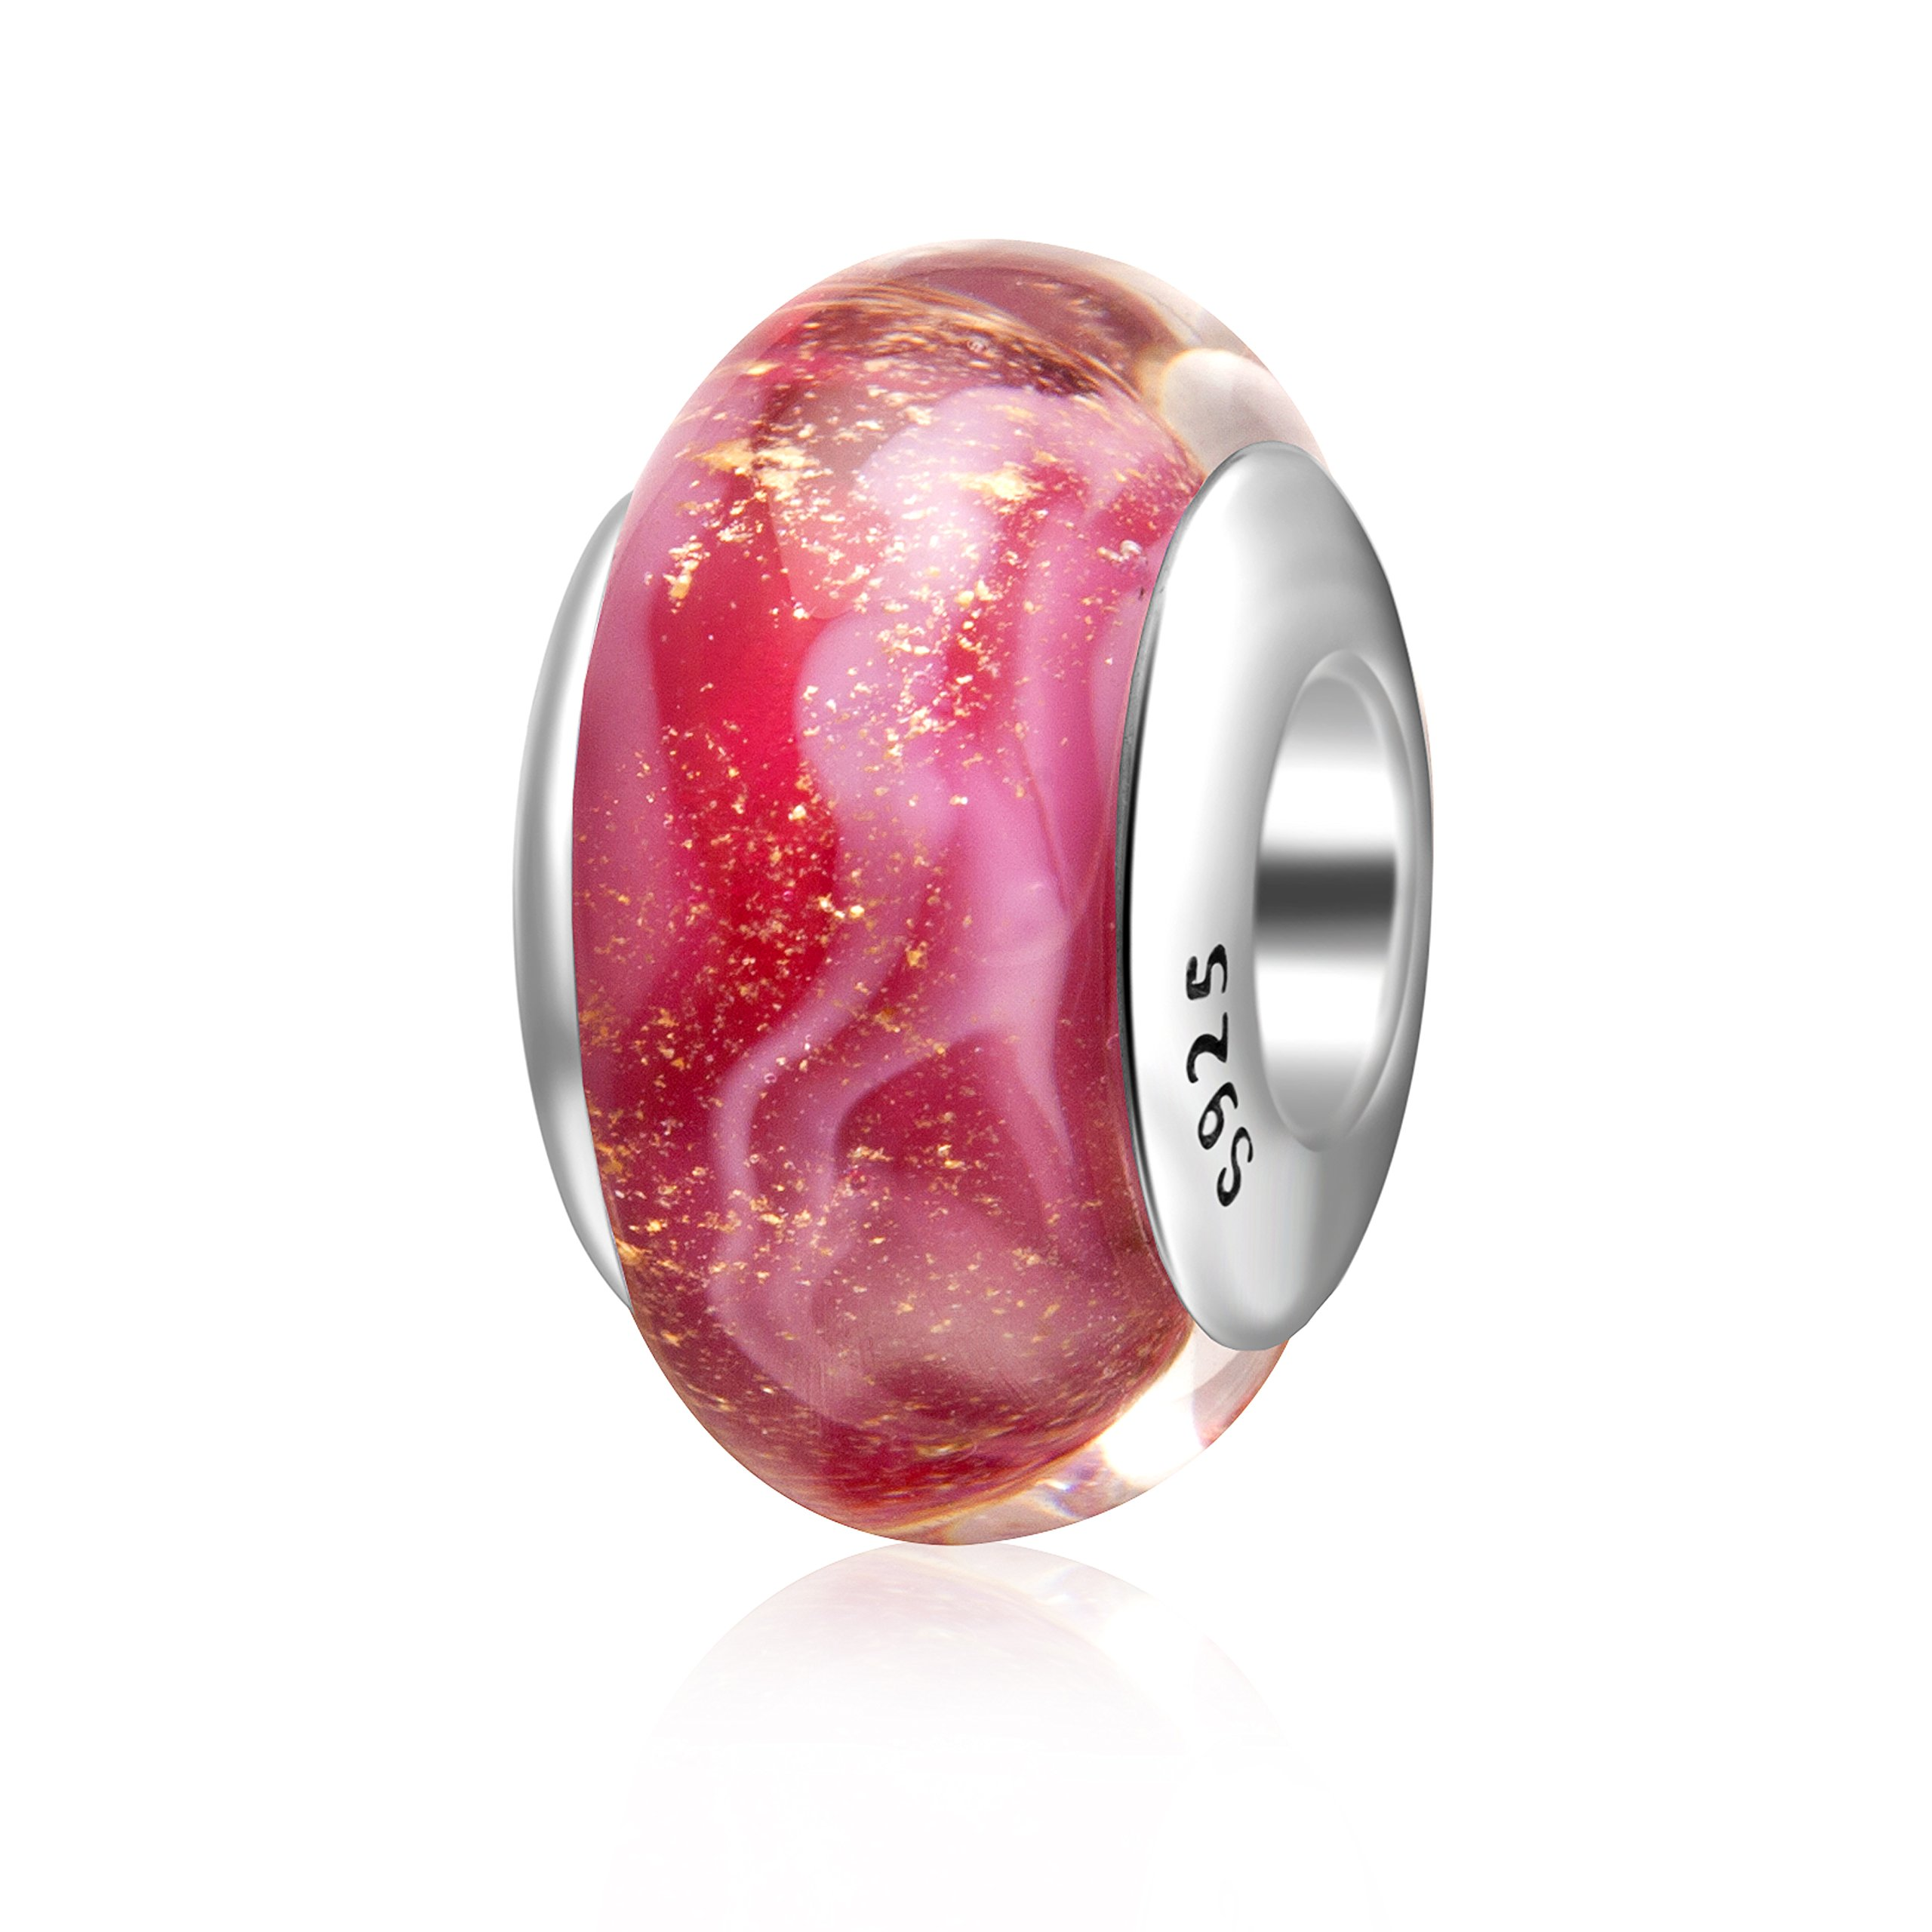 Hoobeads Starry Night Murano Glass Charms 925 Sterling Silver Core Silver Foil Glass Bead for European Bracelet (Pink)